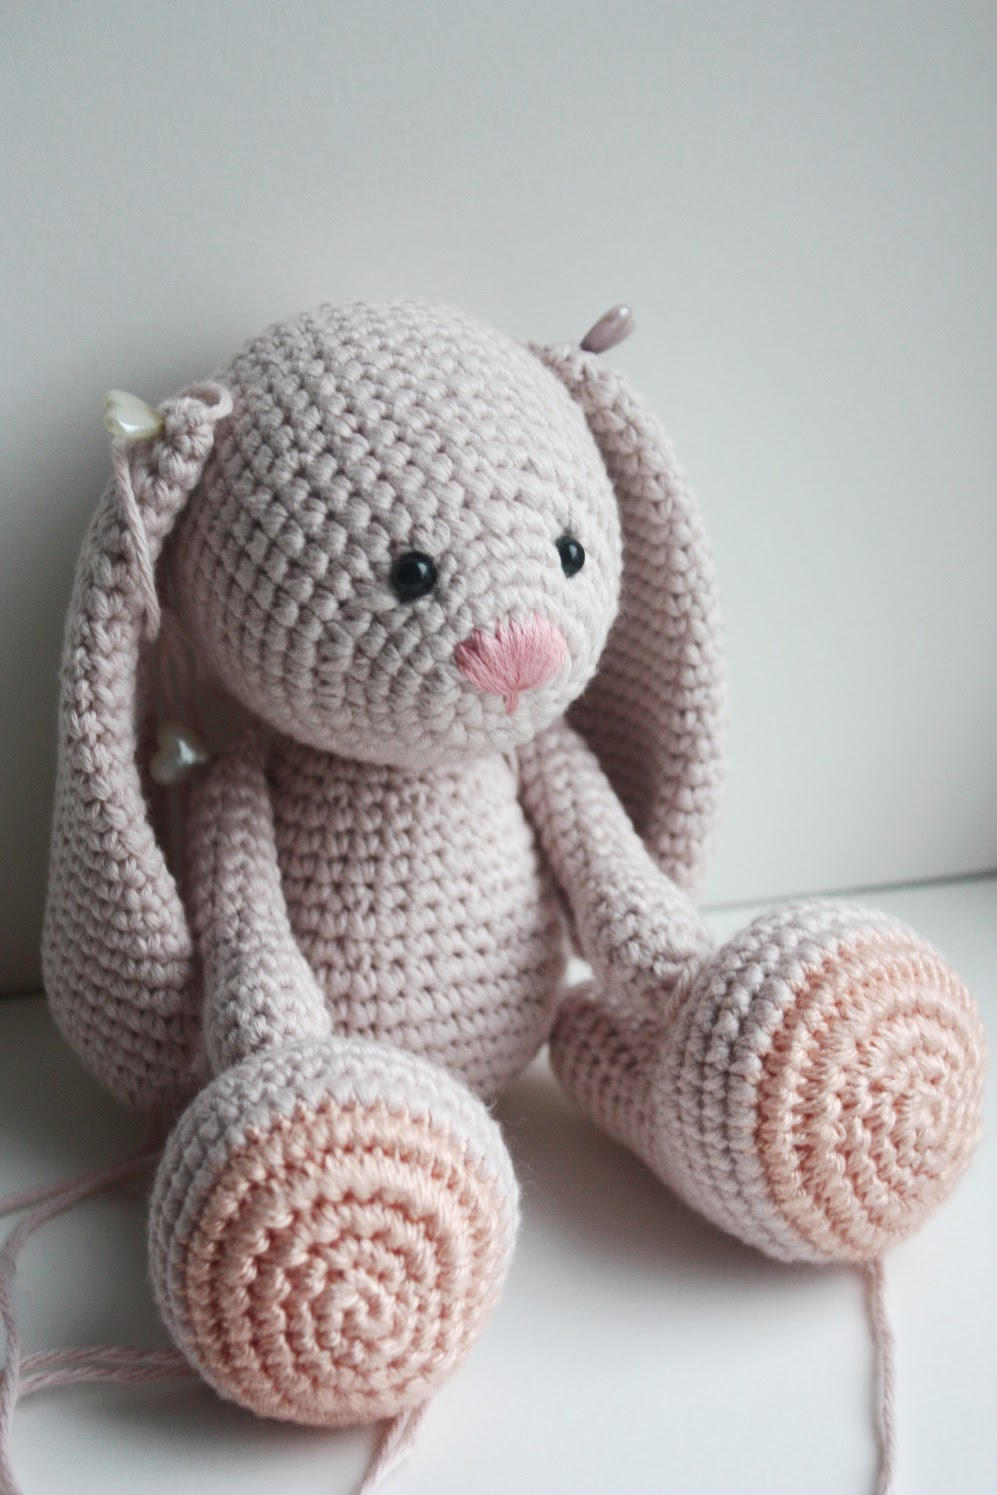 New design: little amigurumi bunny in process, the pattern will be ...